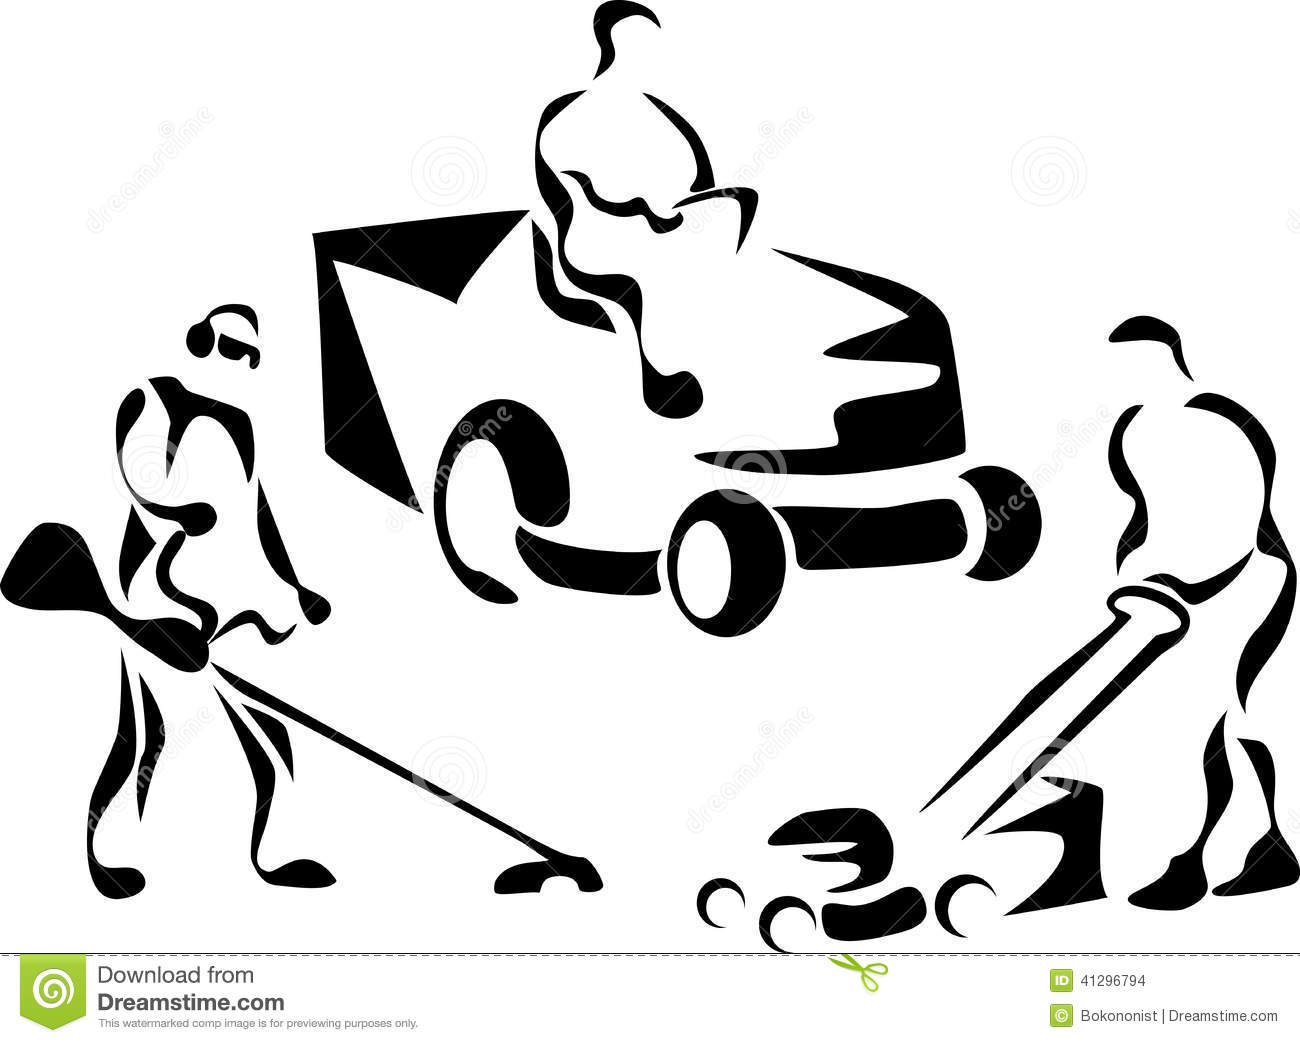 Lawn service tools cliparts vector library download Lawn Care Clipart | Free download best Lawn Care Clipart on ... vector library download